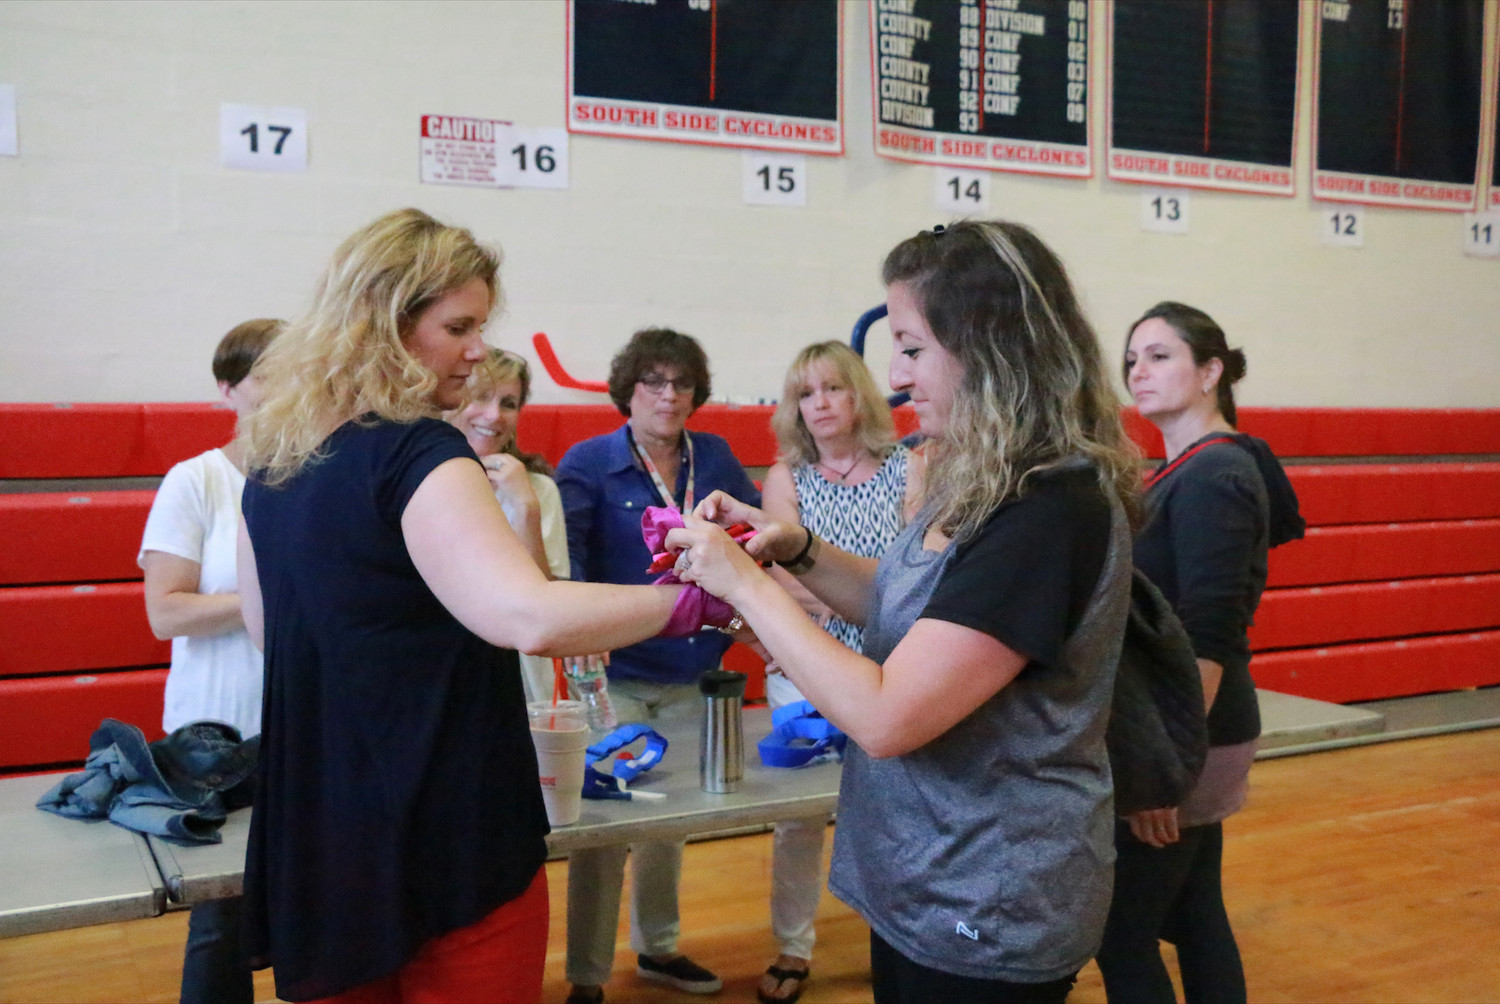 South Side High School staff members Emily Santamarina and Tara McElynn practice applying tourniquets as part of the Stop the Bleed training administered by the Northwell Health Trauma Institute on June 21.